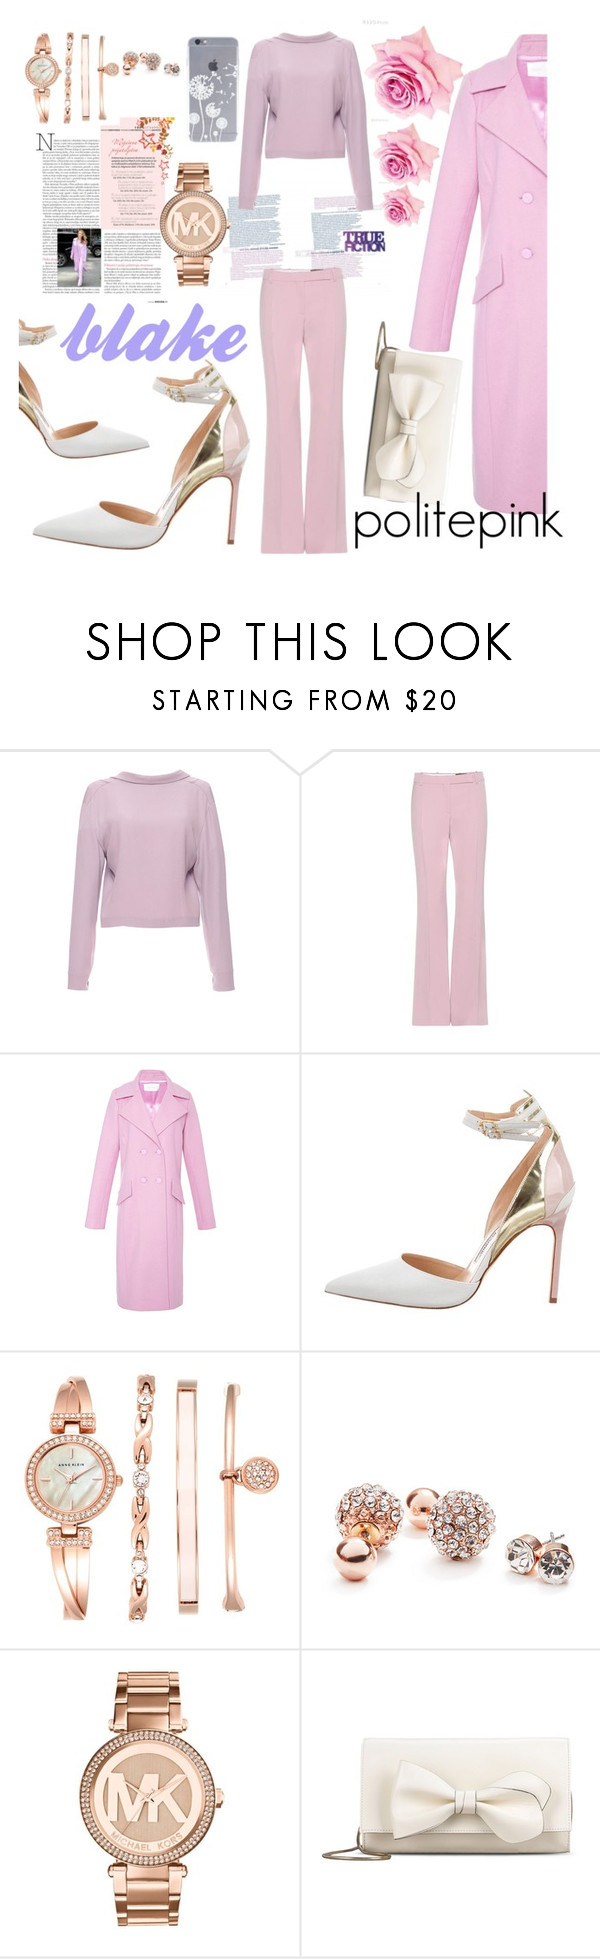 """""""#775 - blake lively"""" by politepink ❤ liked on Polyvore featuring Marni, Alexander McQueen, Cushnie Et Ochs, Manolo Blahnik, Anne Klein, GUESS, Michael Kors and RED Valentino"""